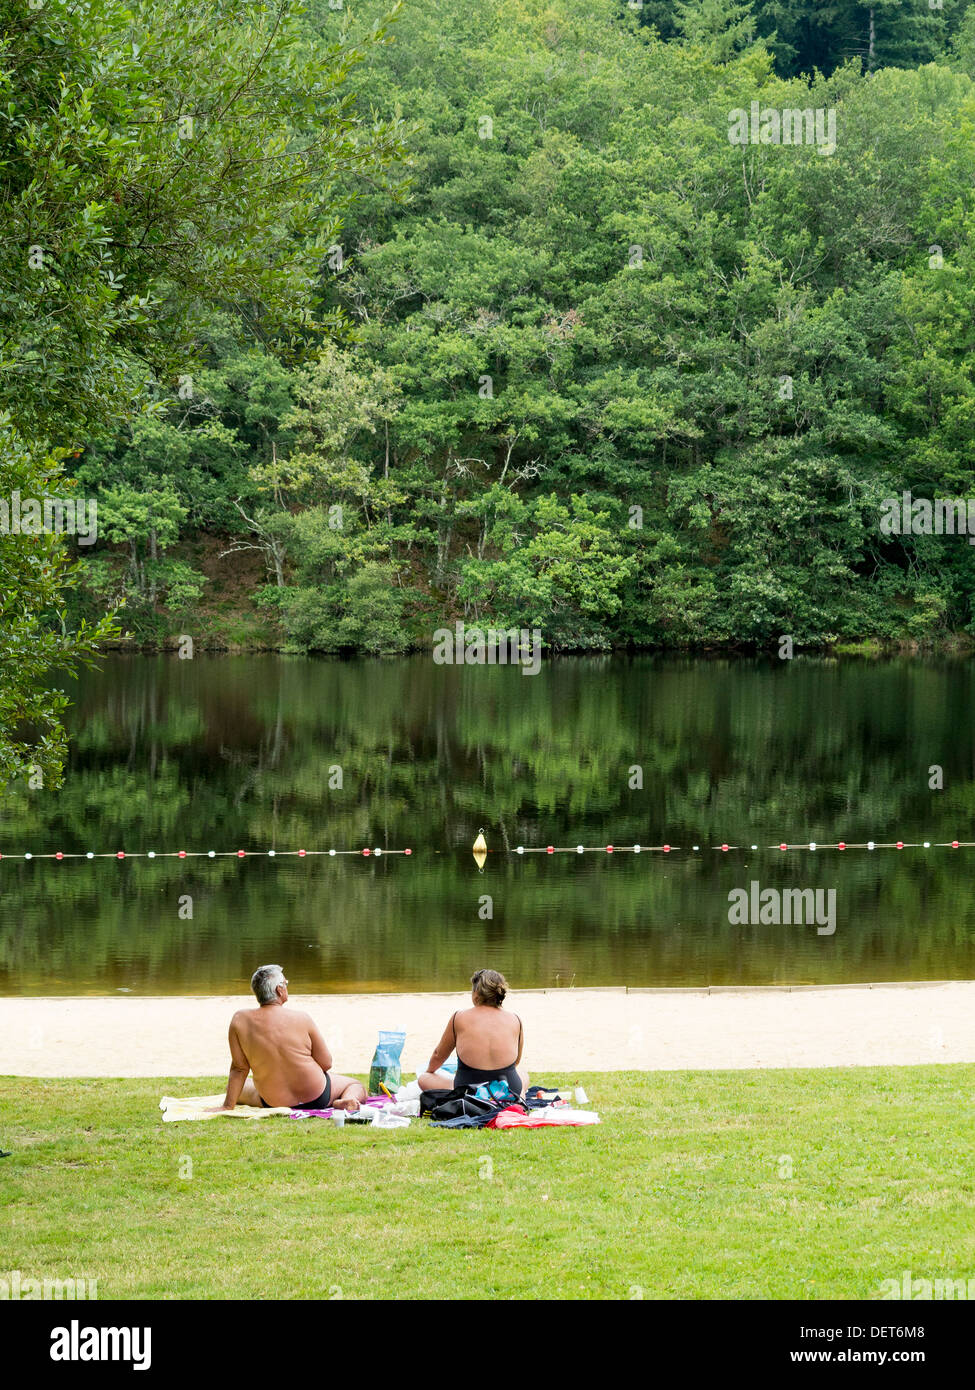 Man made river beach on the River Maulde in the Pays Mont et Barrages area of Haute-Vienne, Limousin, France. - Stock Image